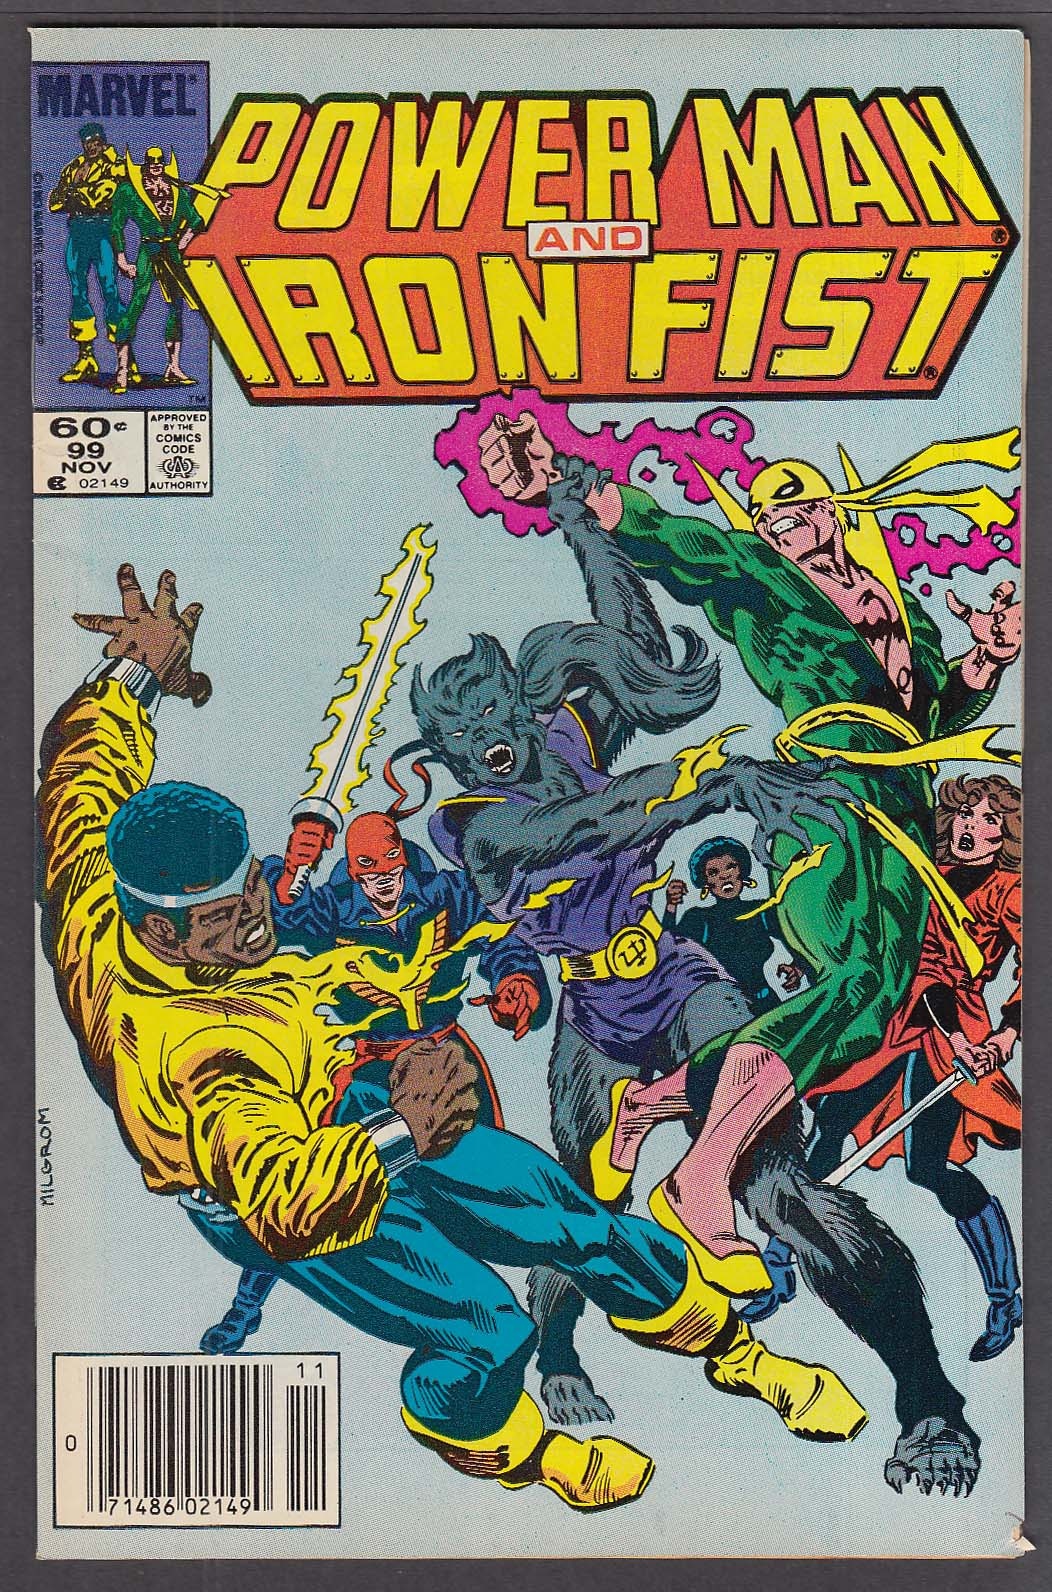 Image for POWER MAN & IRON FIST #99 Marvel comic book 11 1983